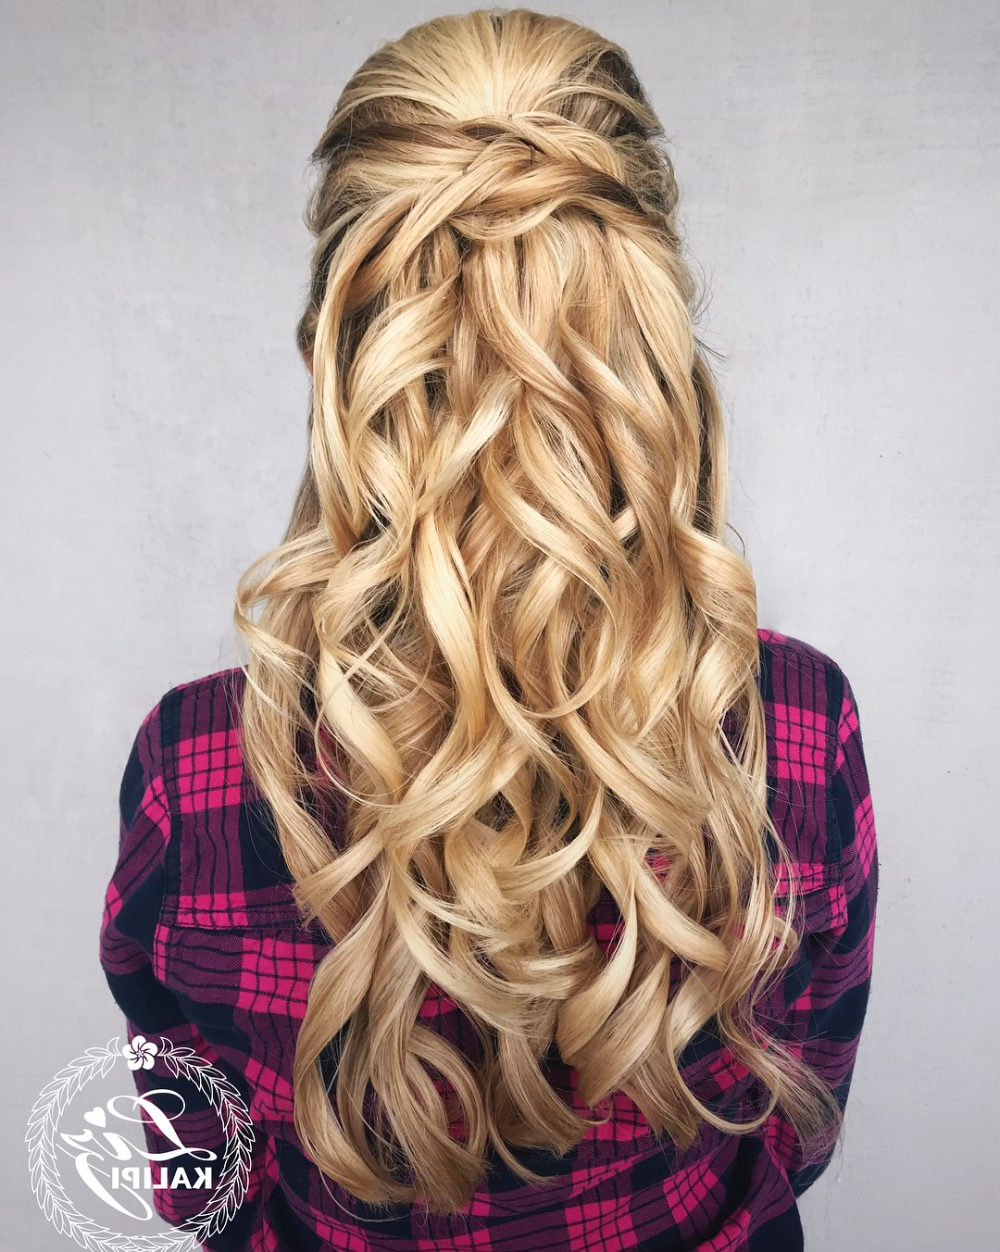 31 Prom Hairstyles For Long Hair That Are Gorgeous In 2019 For Recent Elegant Curled Prom Hairstyles (View 6 of 20)